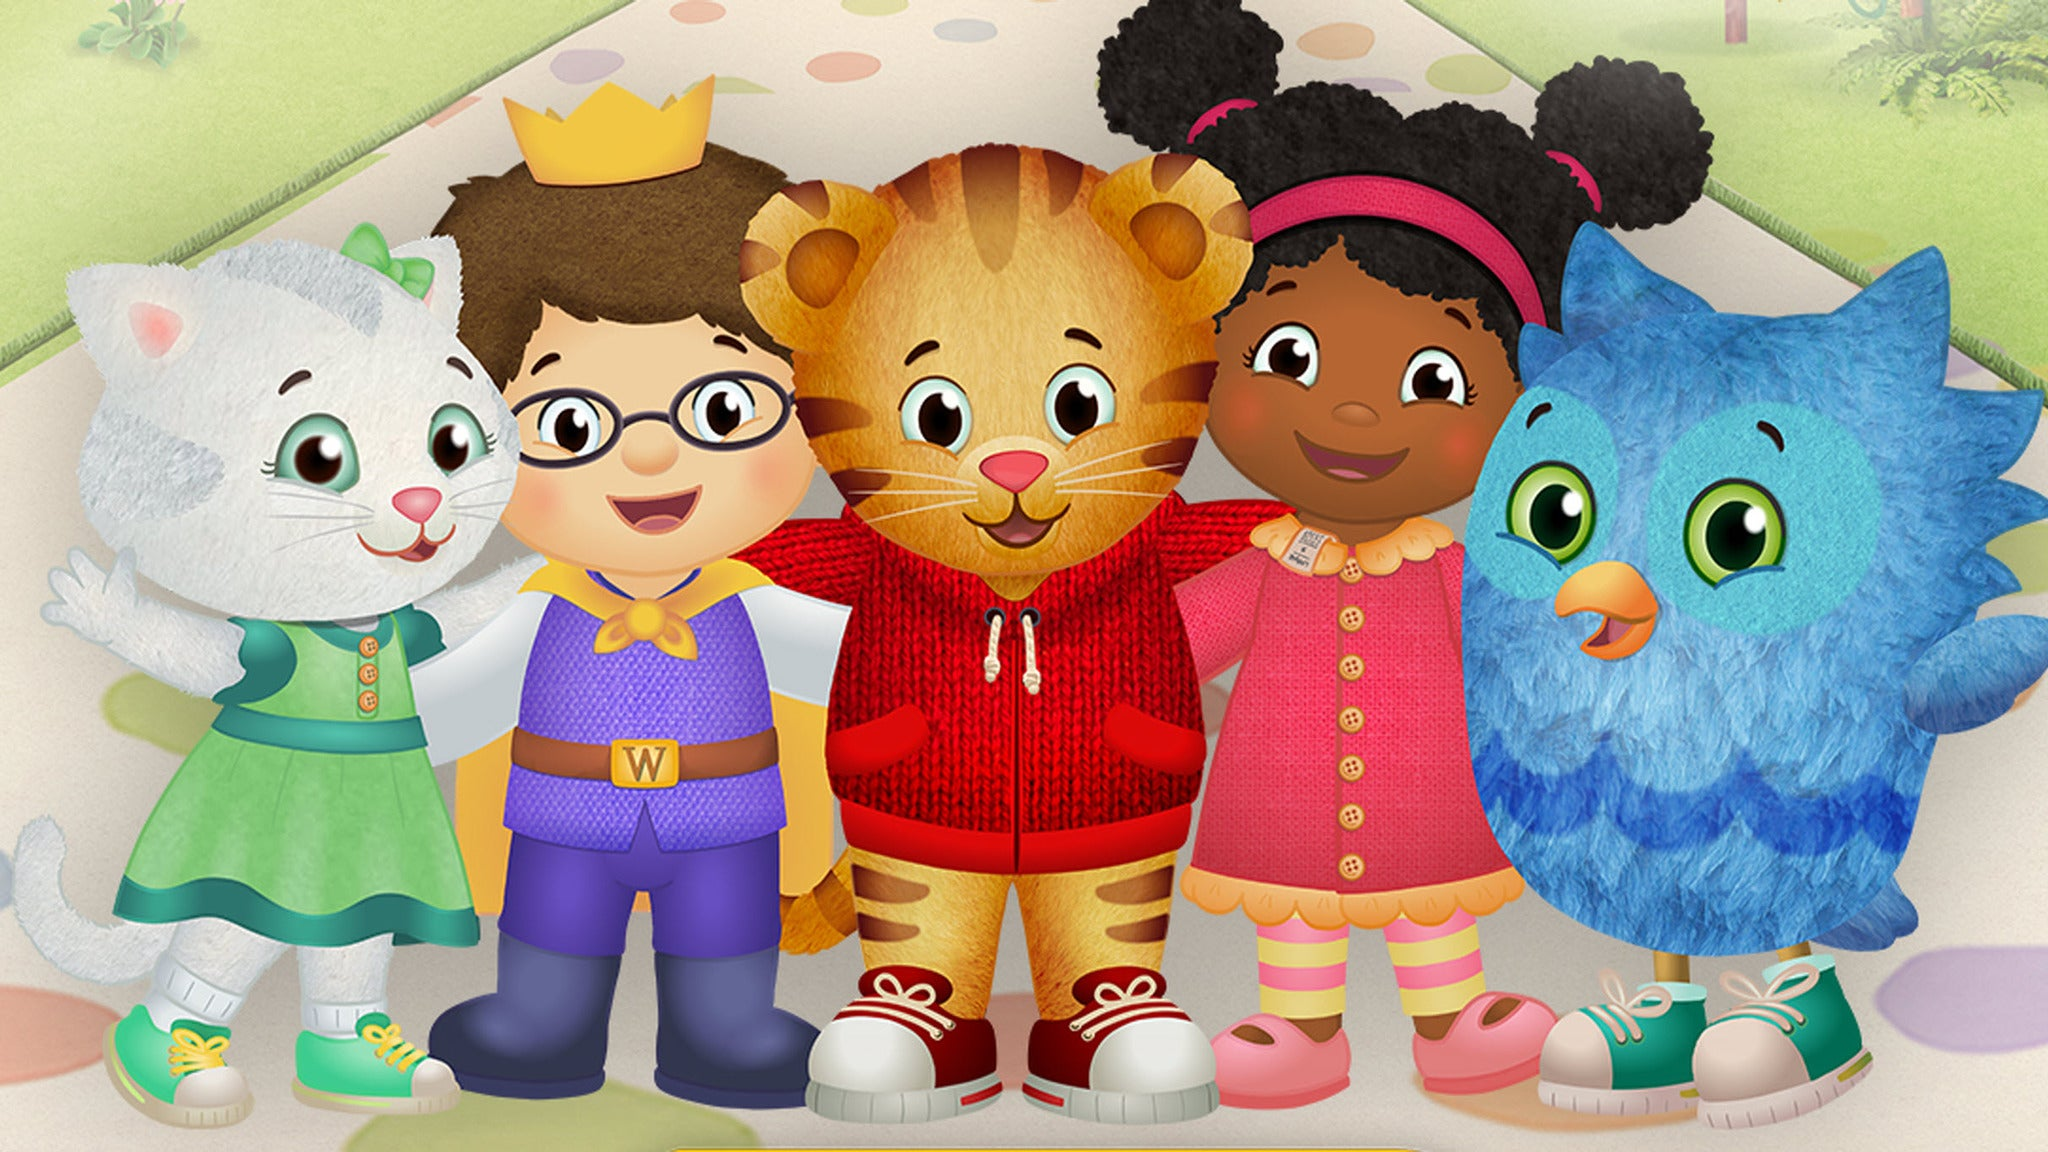 Daniel Tiger's Neighborhood at Palace Theatre Stamford